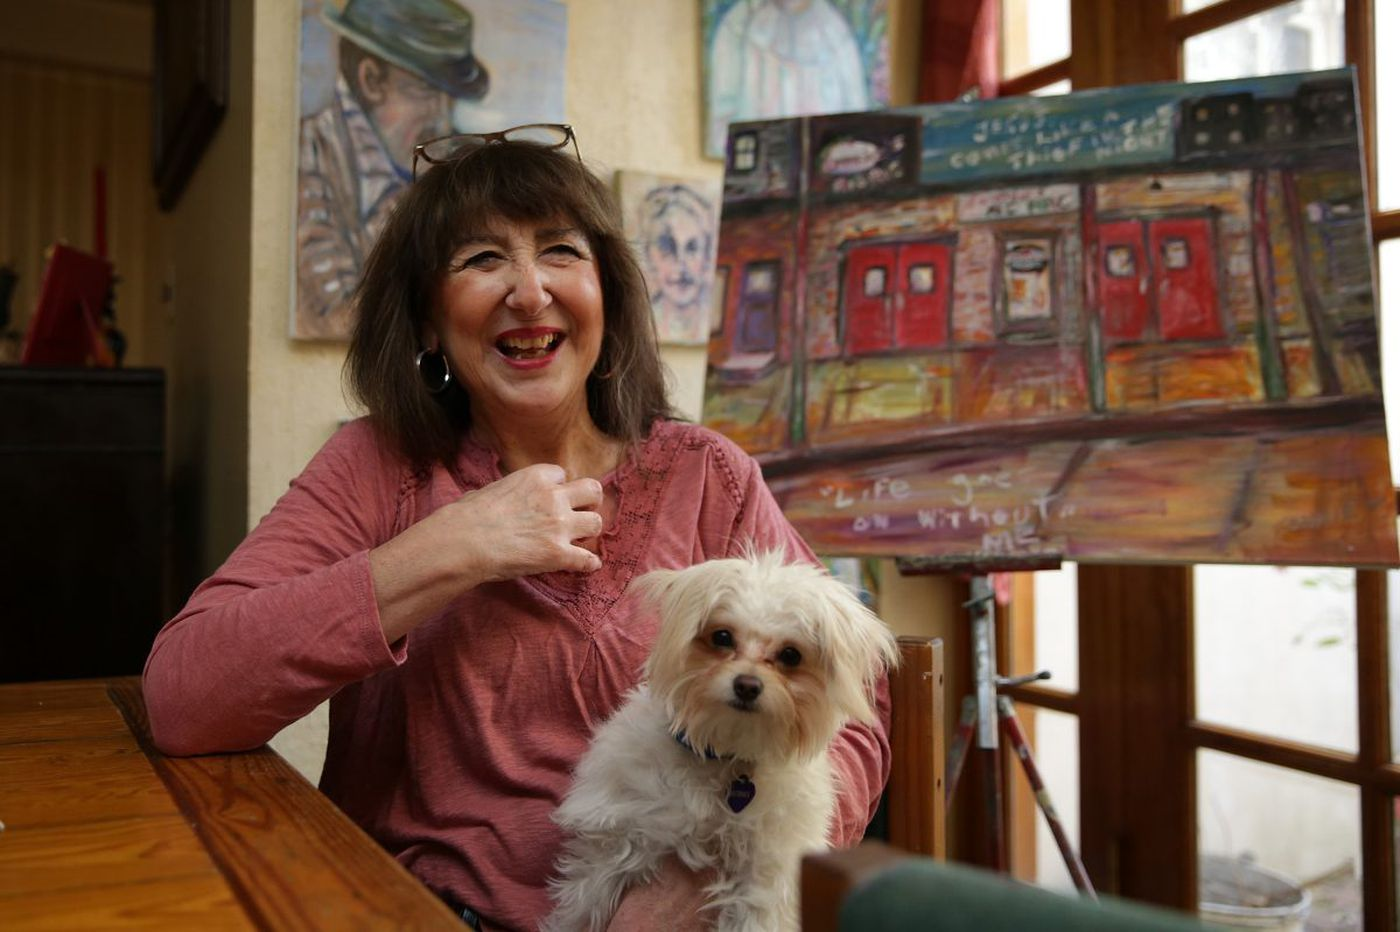 Italian Market mom paints what she knows - grief | Mike Newall